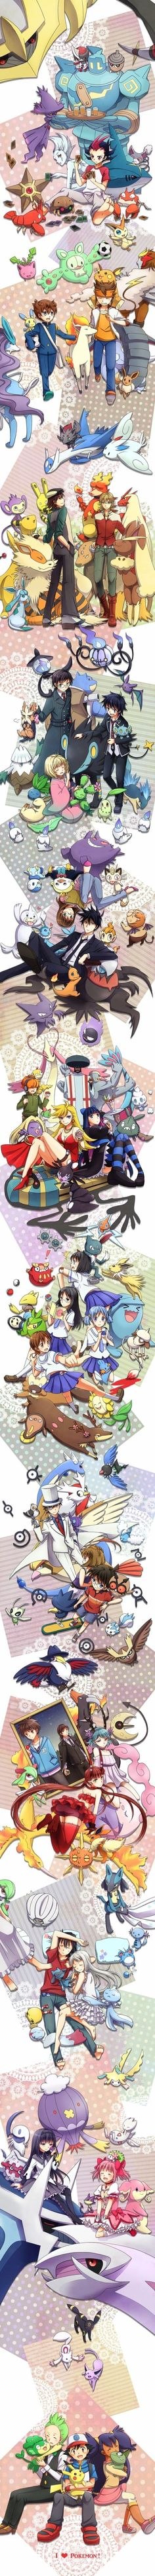 Pokémon with various anime characters. The Yu-Gi-Oh! and Blue Exorcist are the best to me.